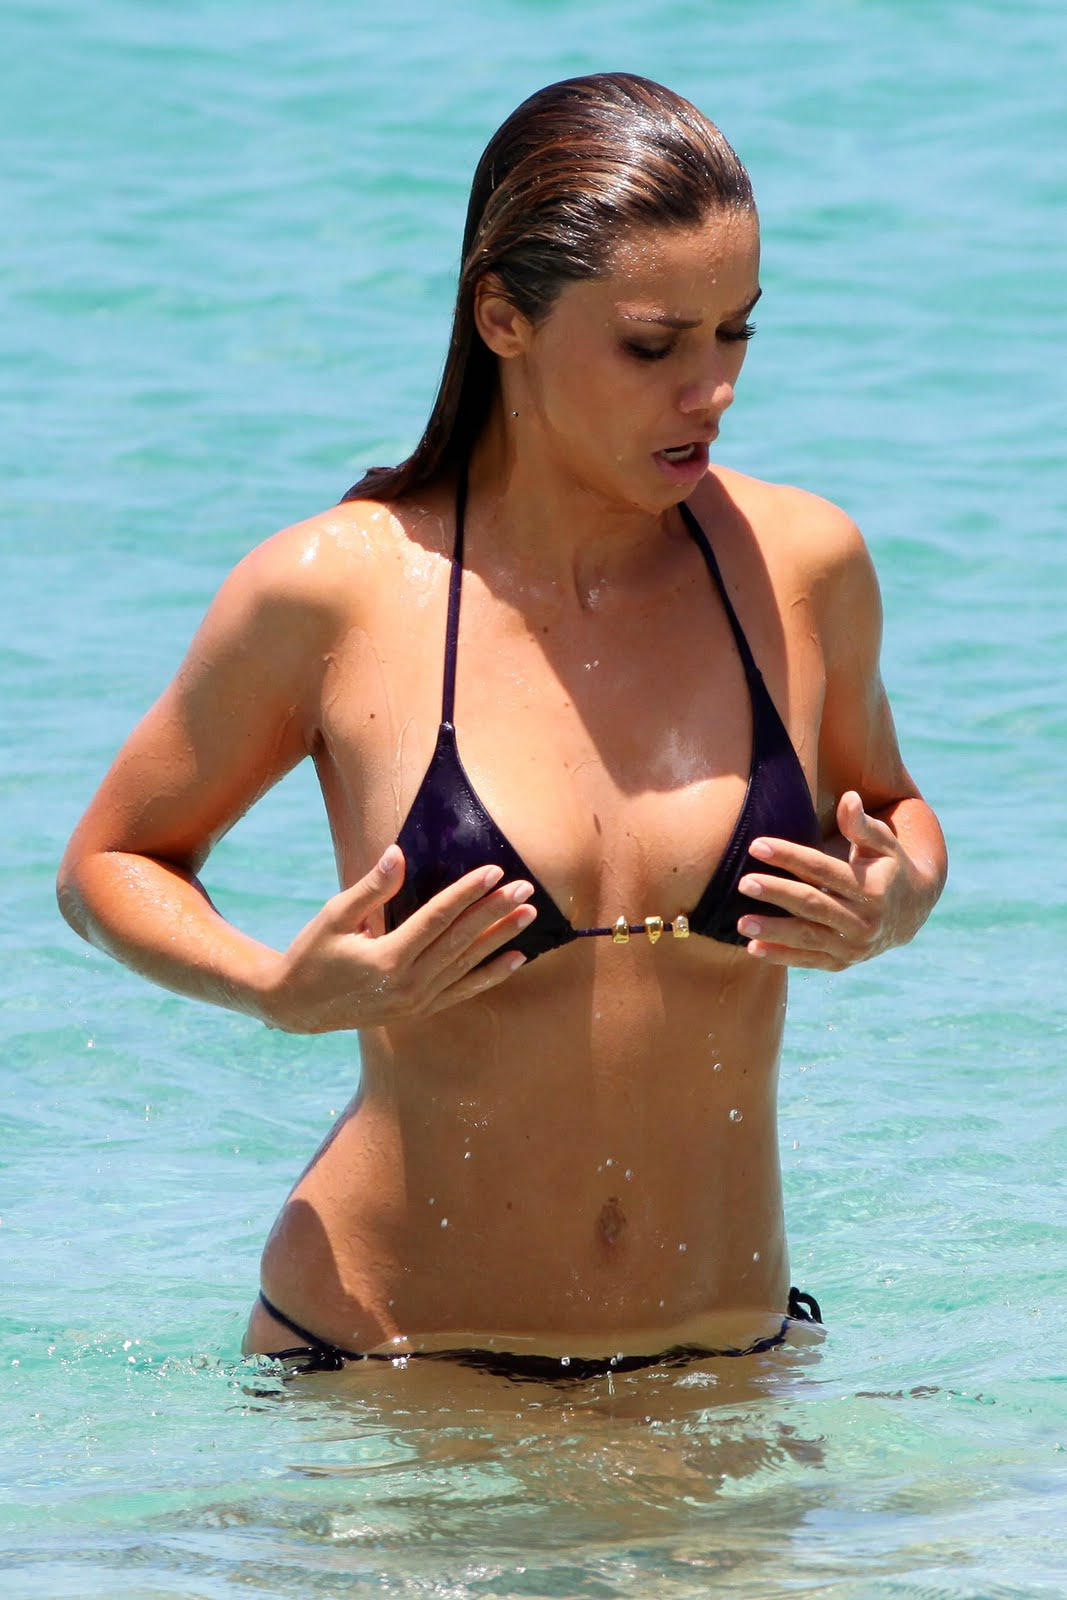 ... her tight bikini body? Enjoy Adriana Lima hot bikini pictures from ...